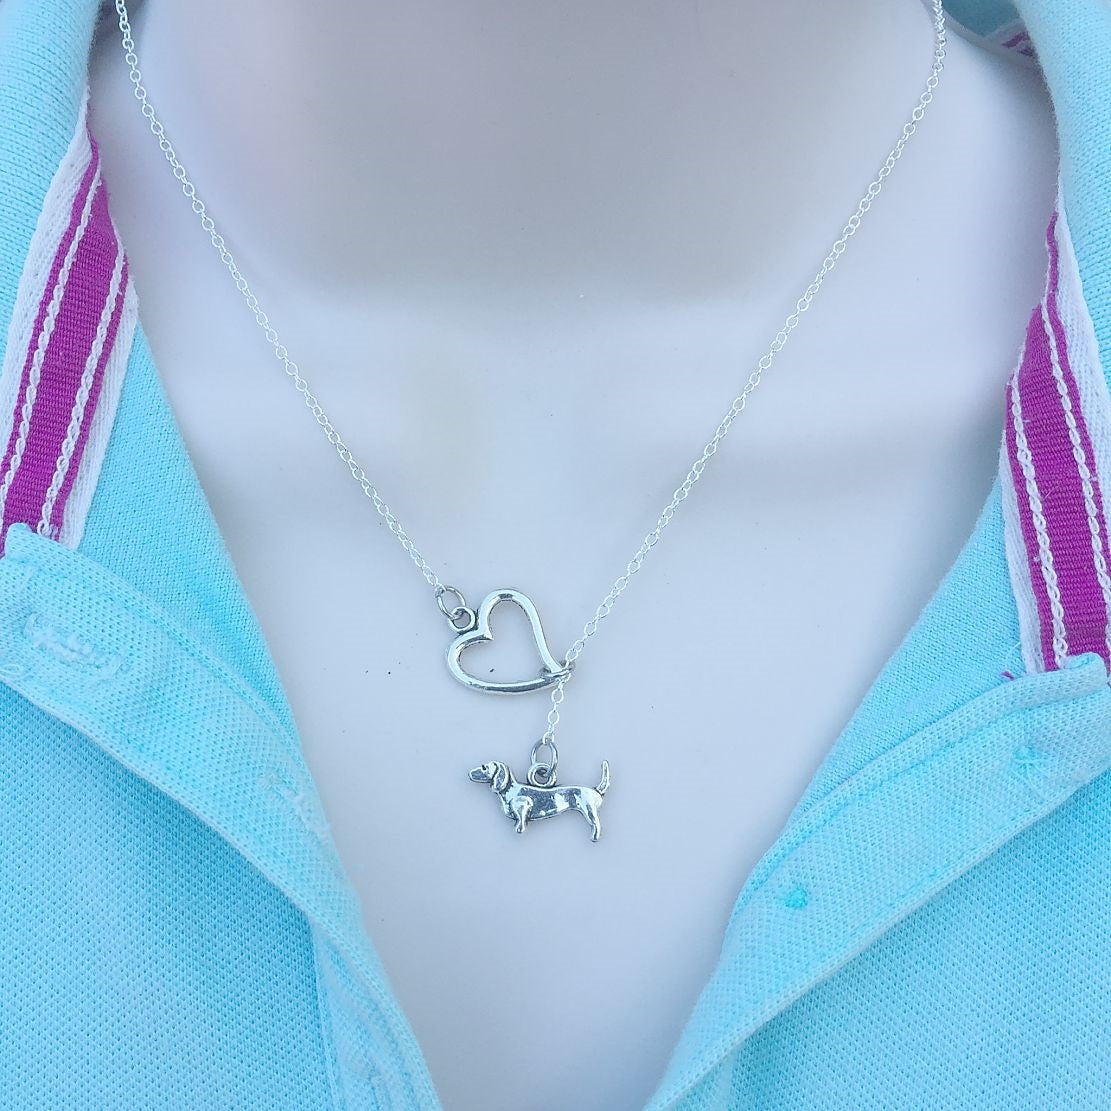 I Heart My Dachshund Dog Handcrafted Necklace Lariat Style